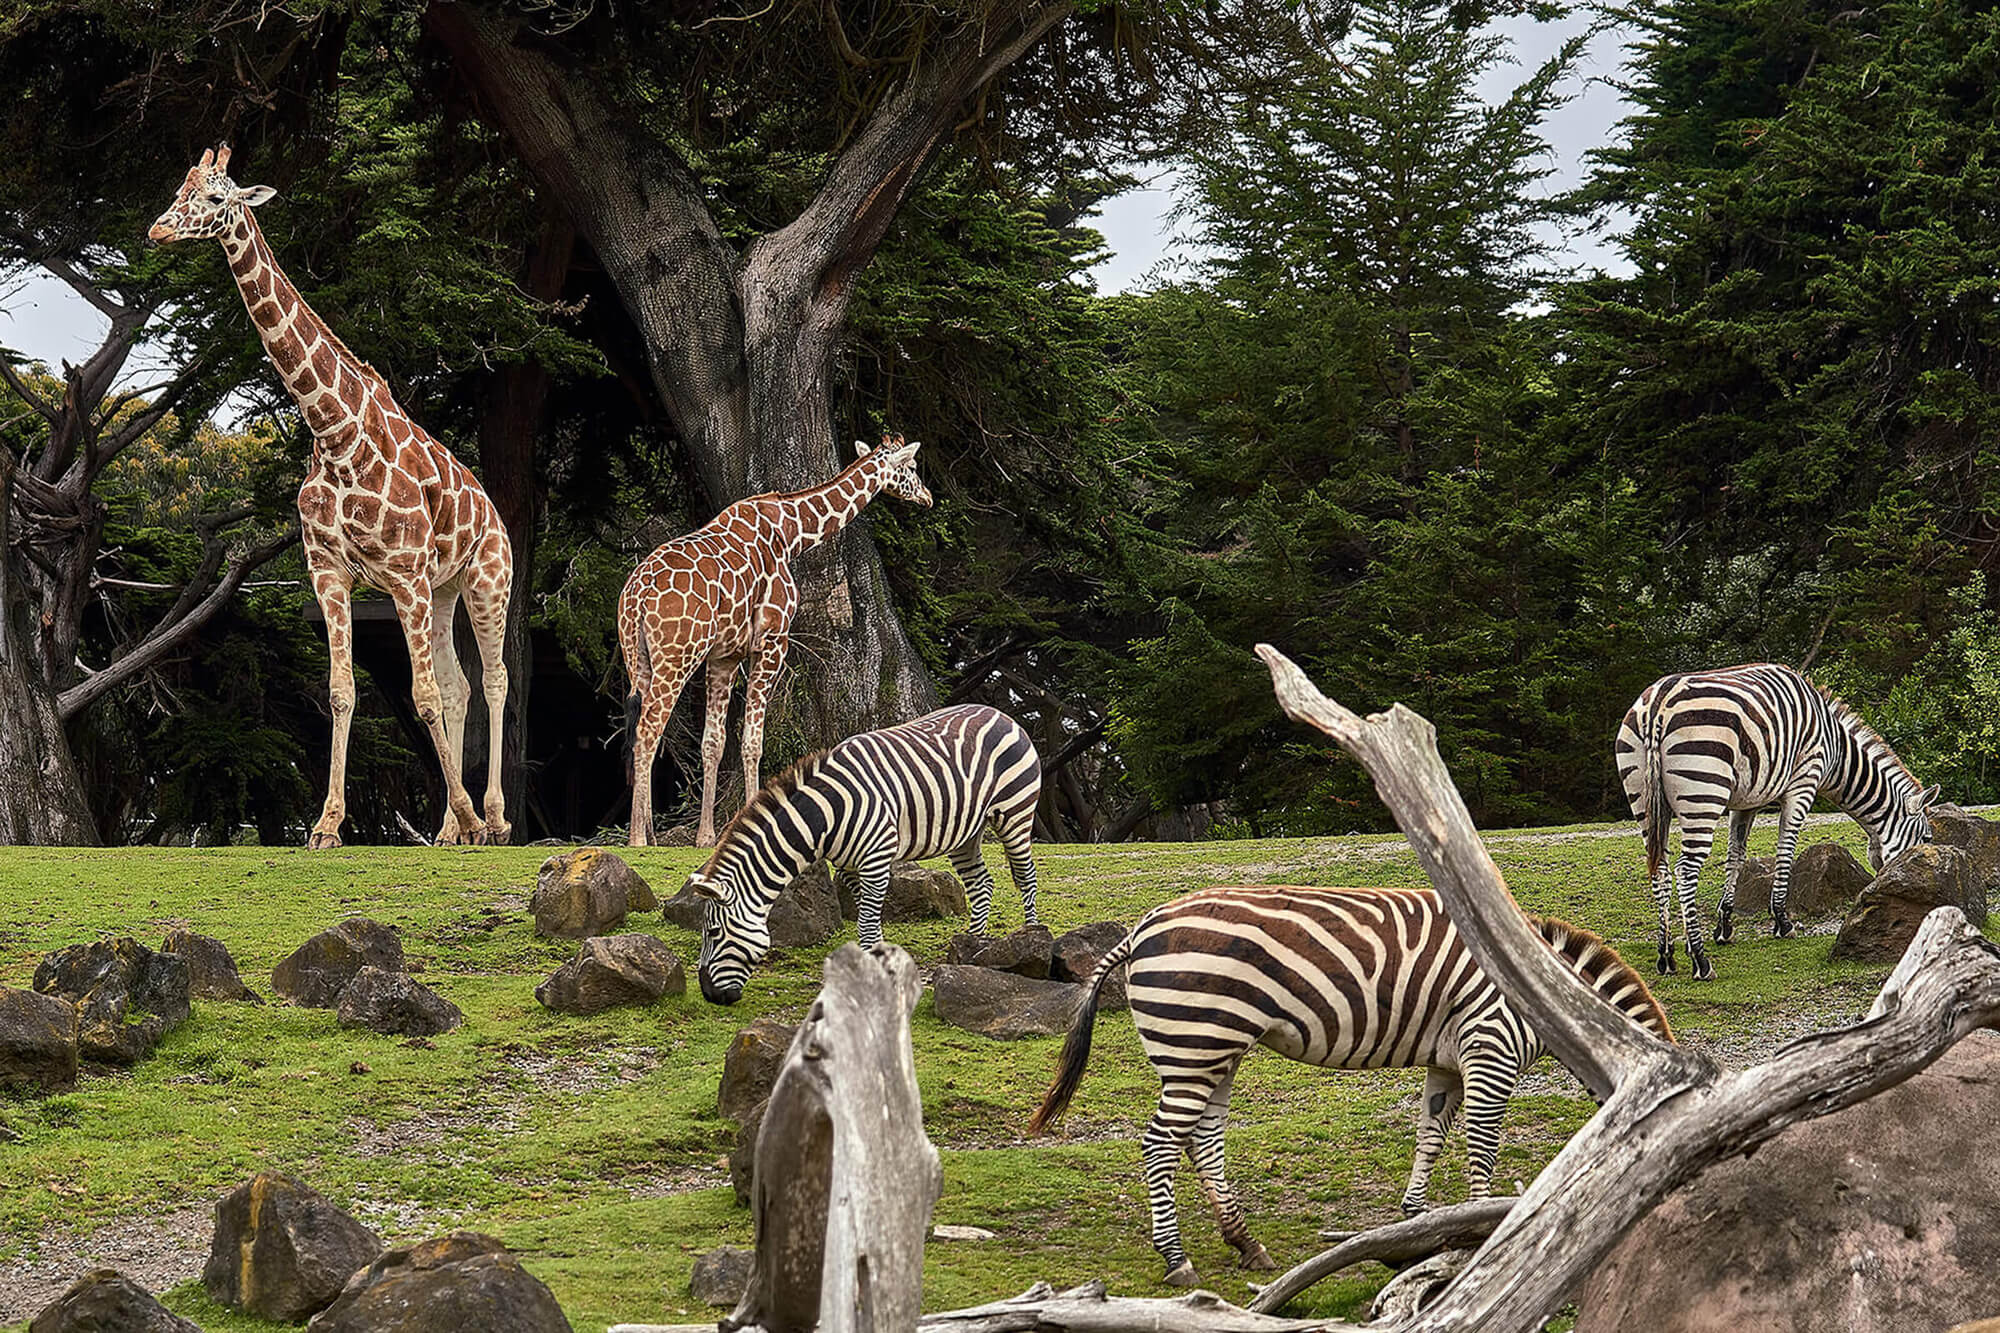 Giraffes and zebras grazing in a zoo